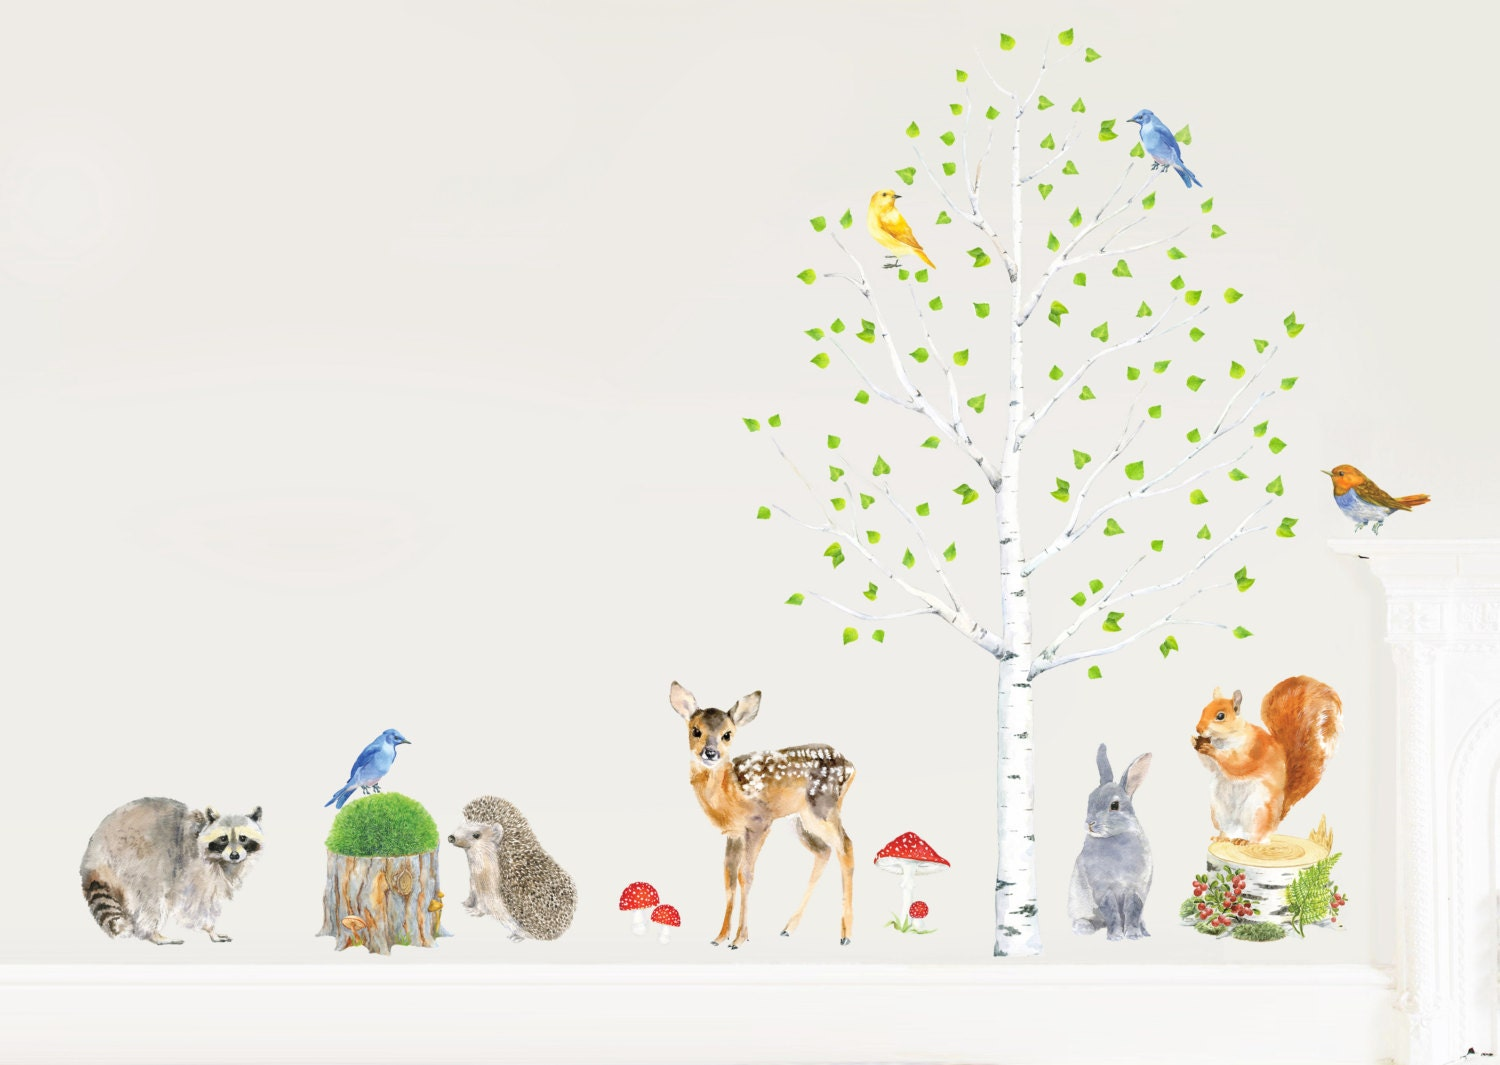 Removable Christmas Wall Stickers Nursery Forest Decor Woodland Decor Set Forest Wall Decal